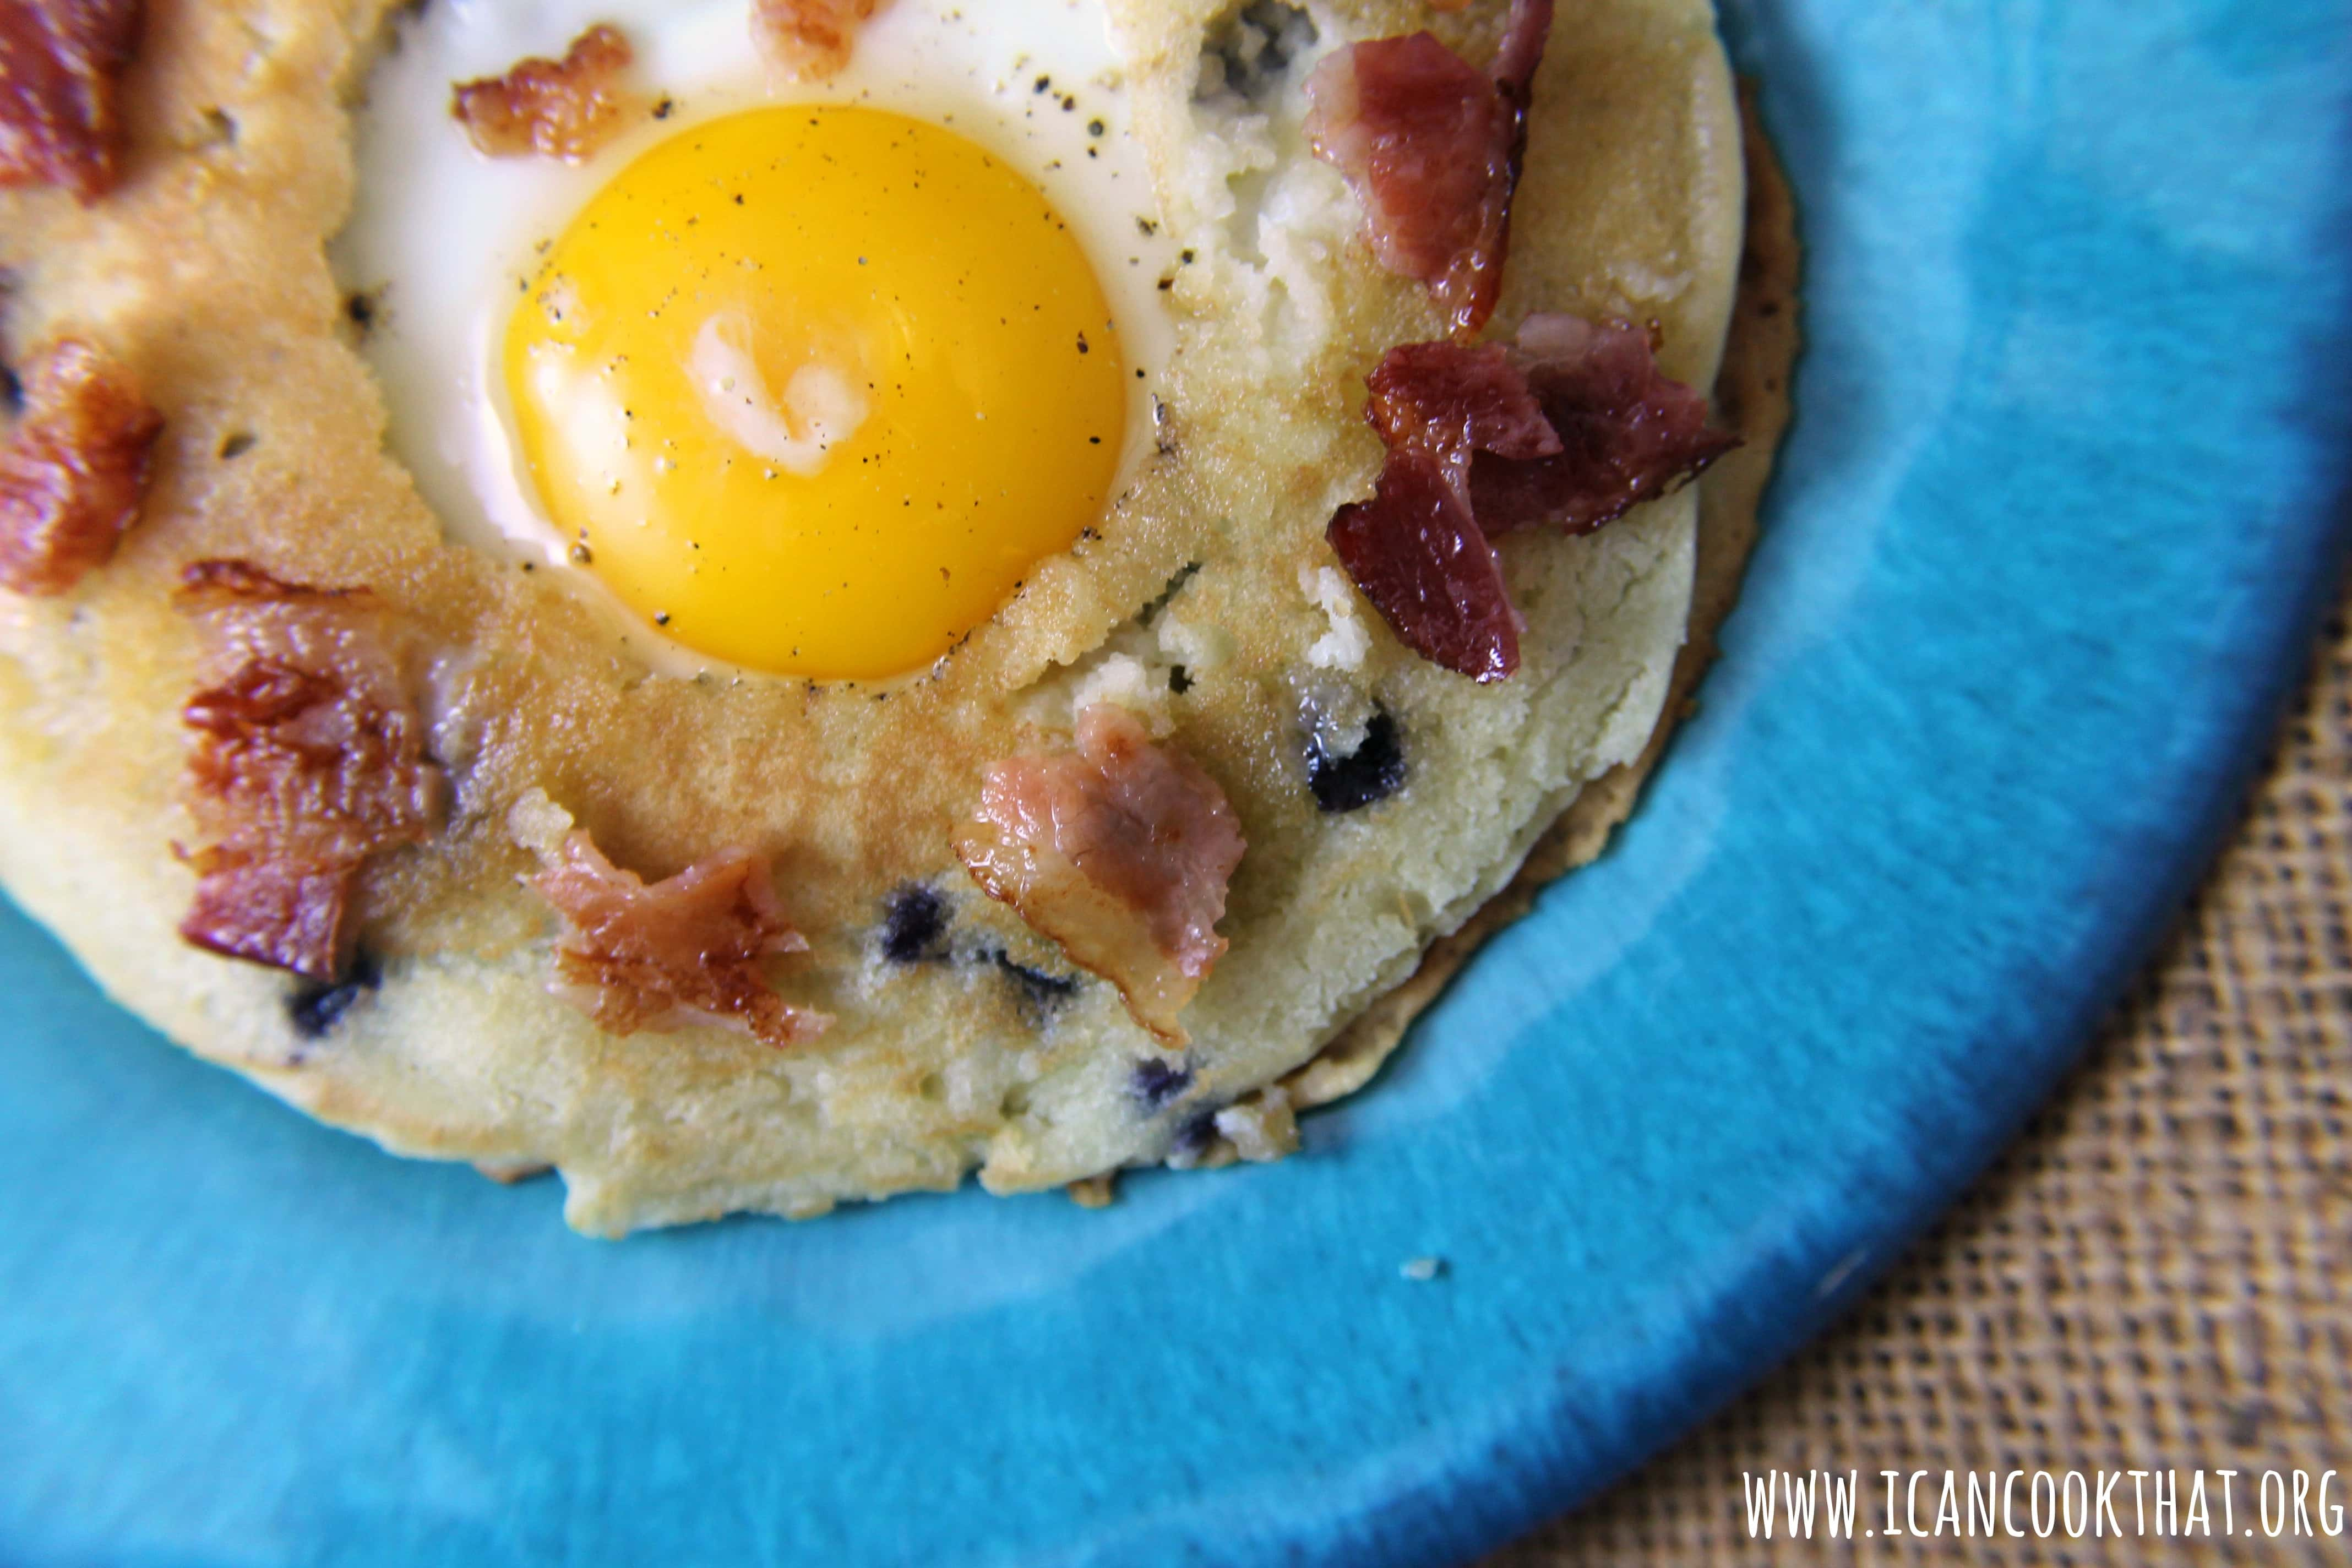 Frog in a Hole with Blueberry Pancakes